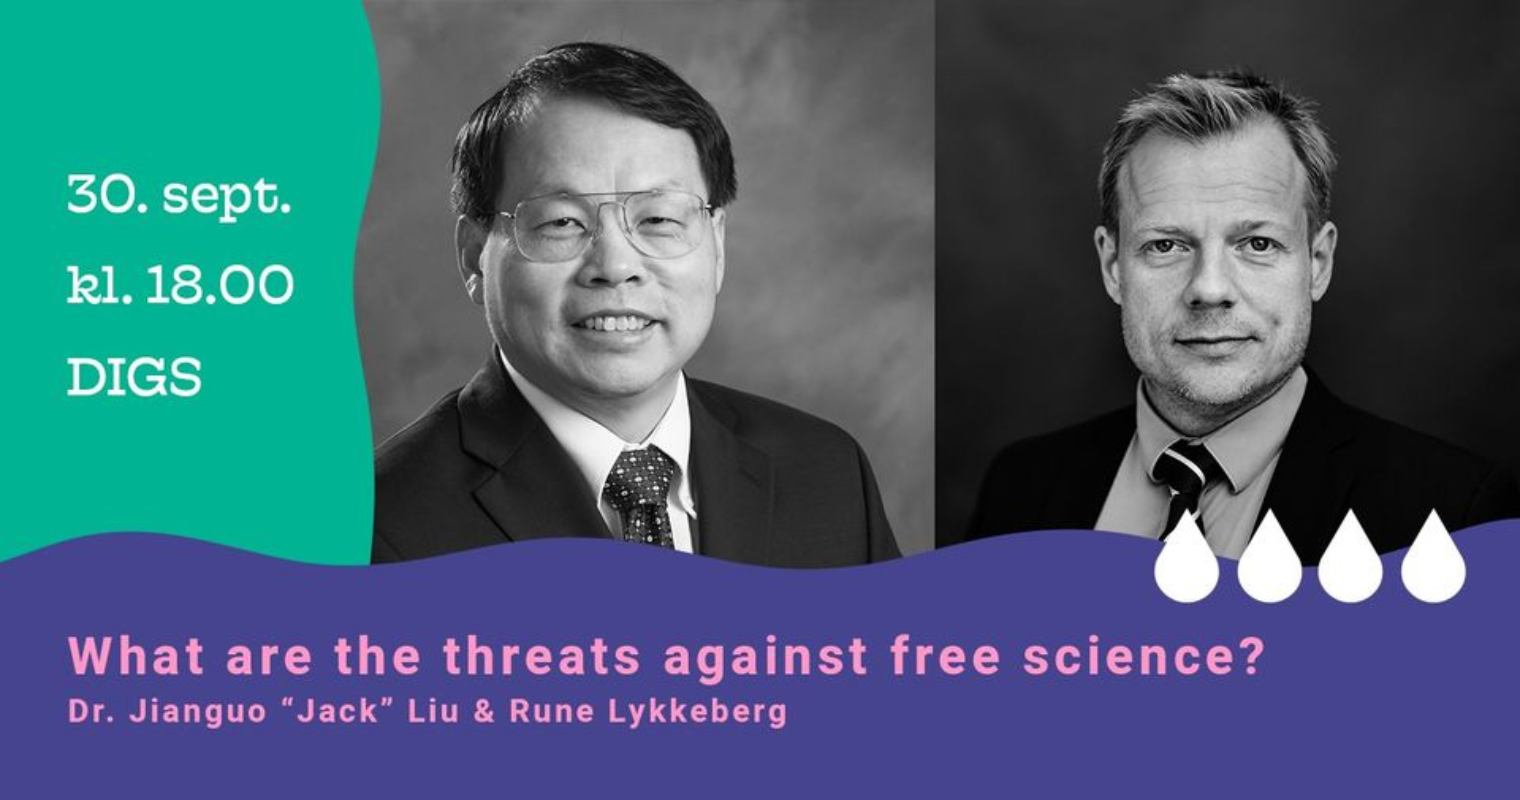 What are the threats against free science?